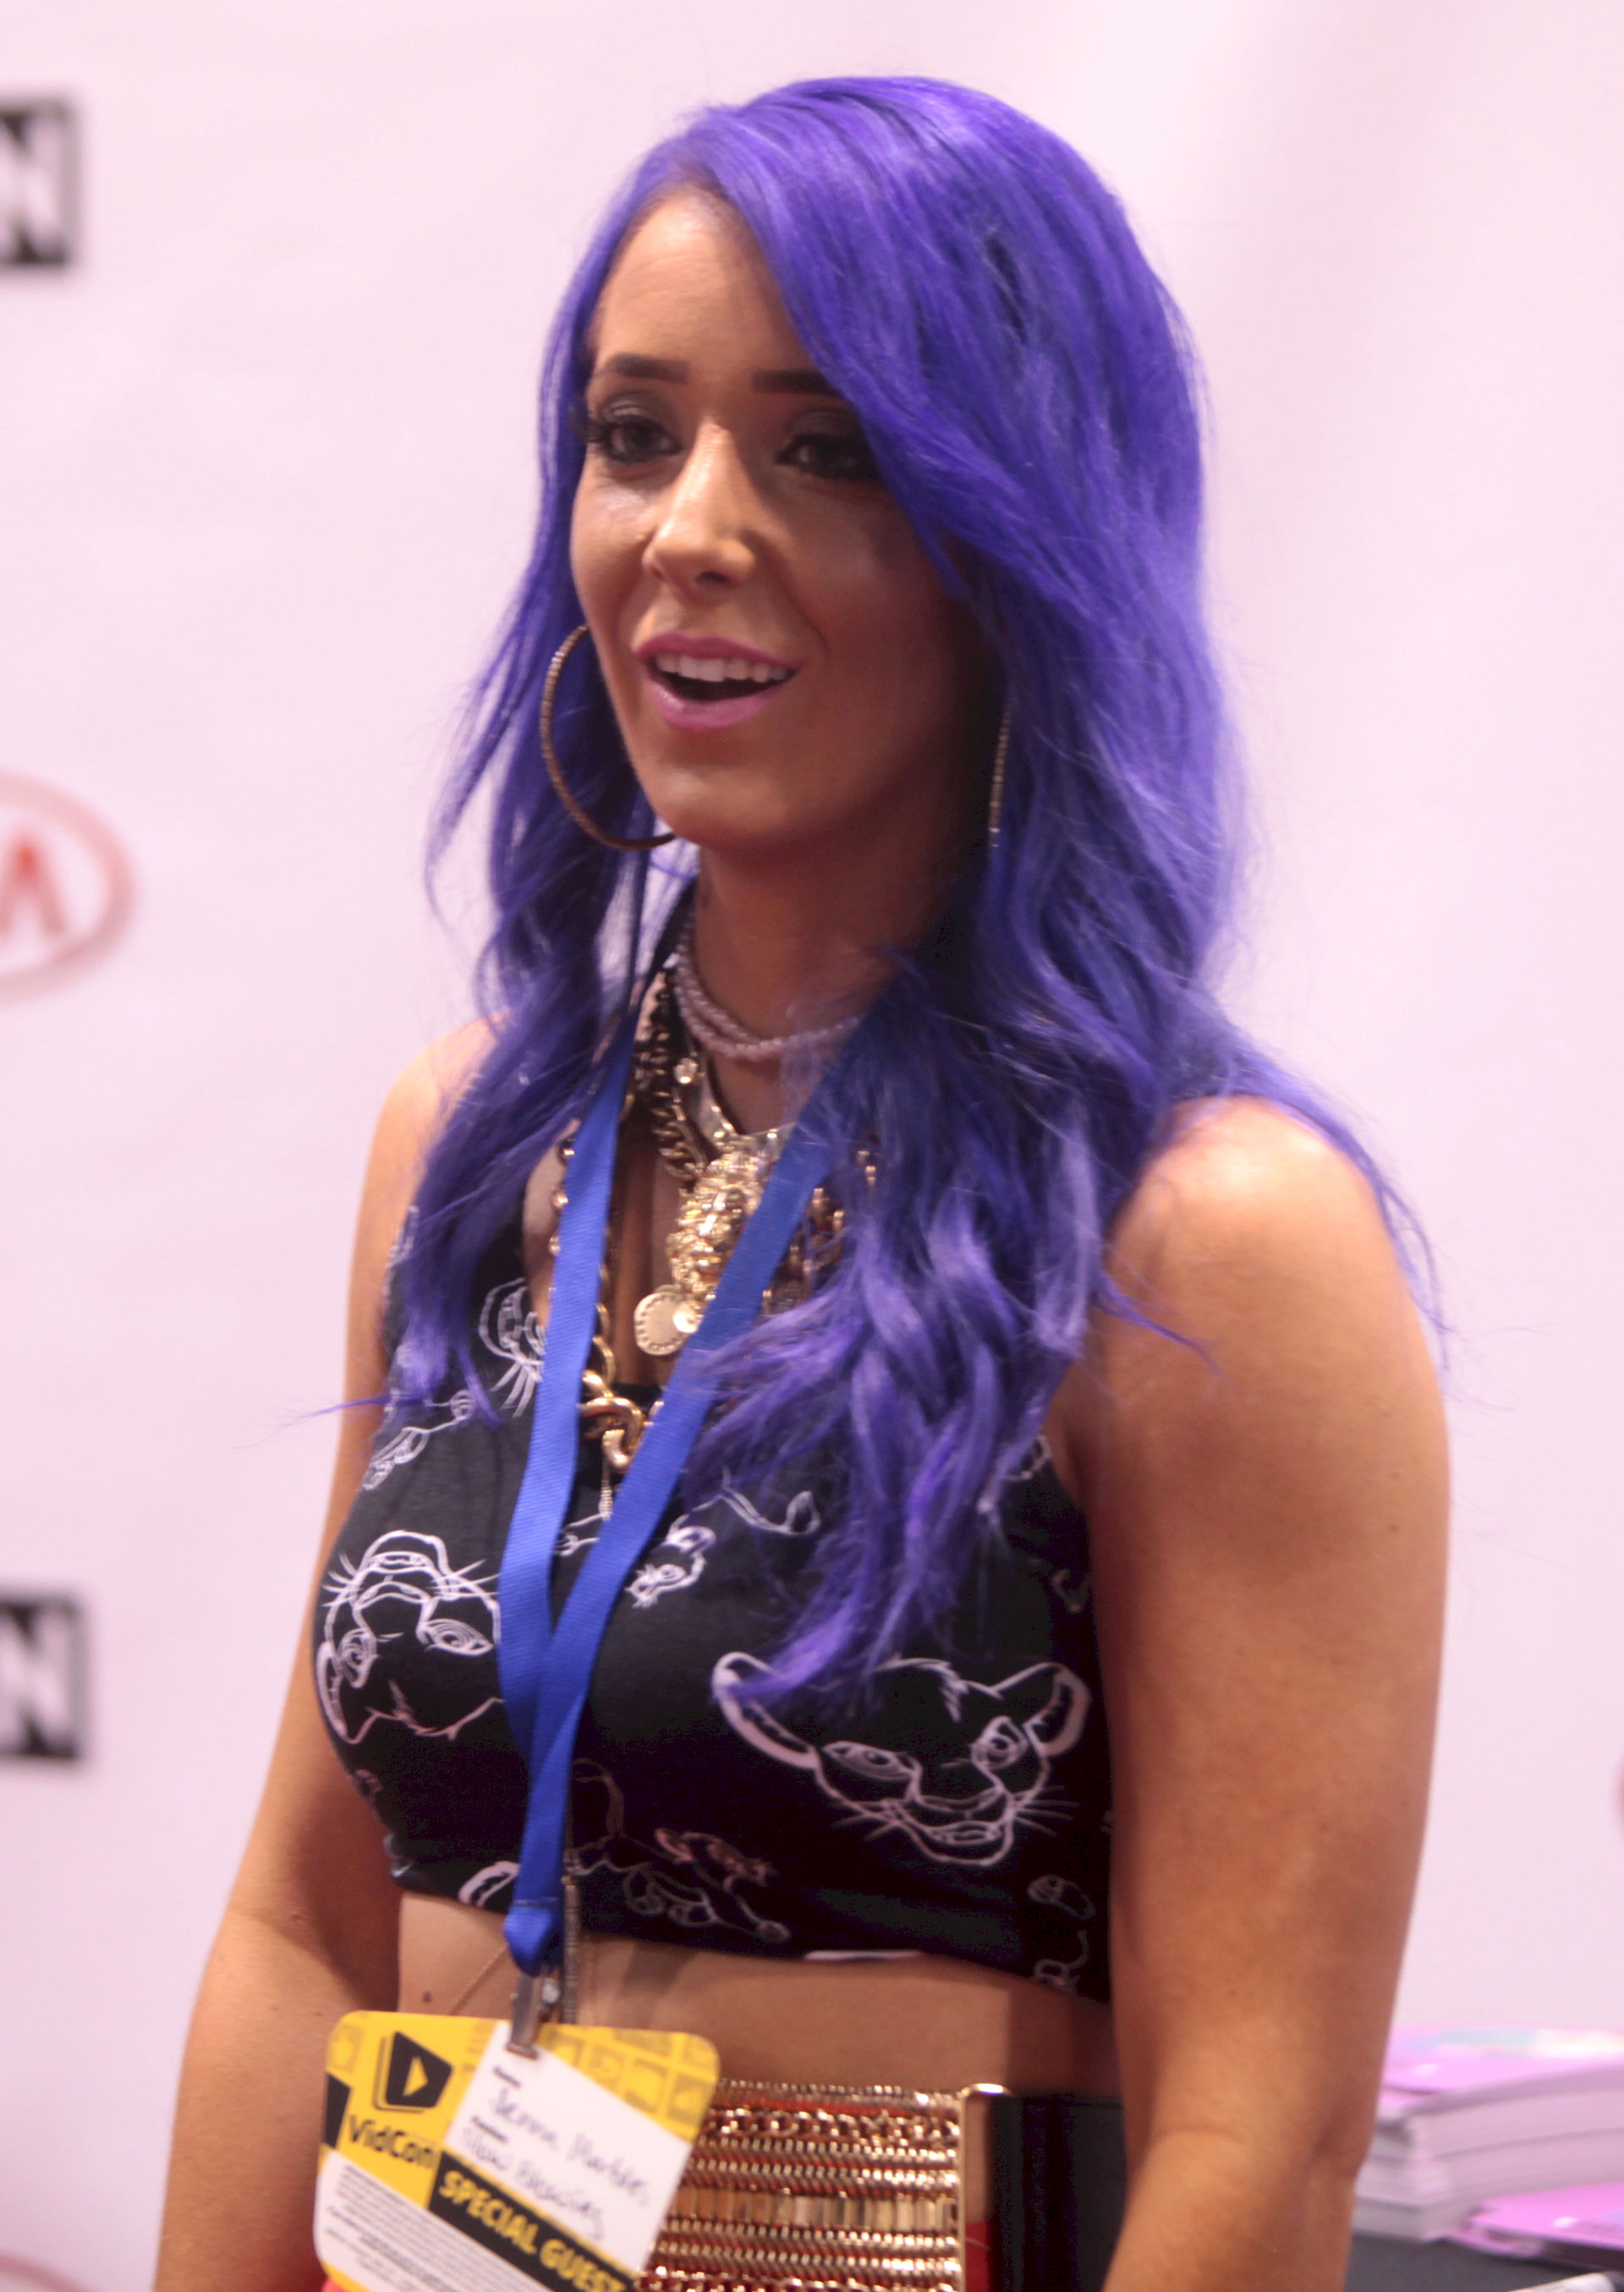 Photo of Jenna Marbles: American entertainer and YouTube personality